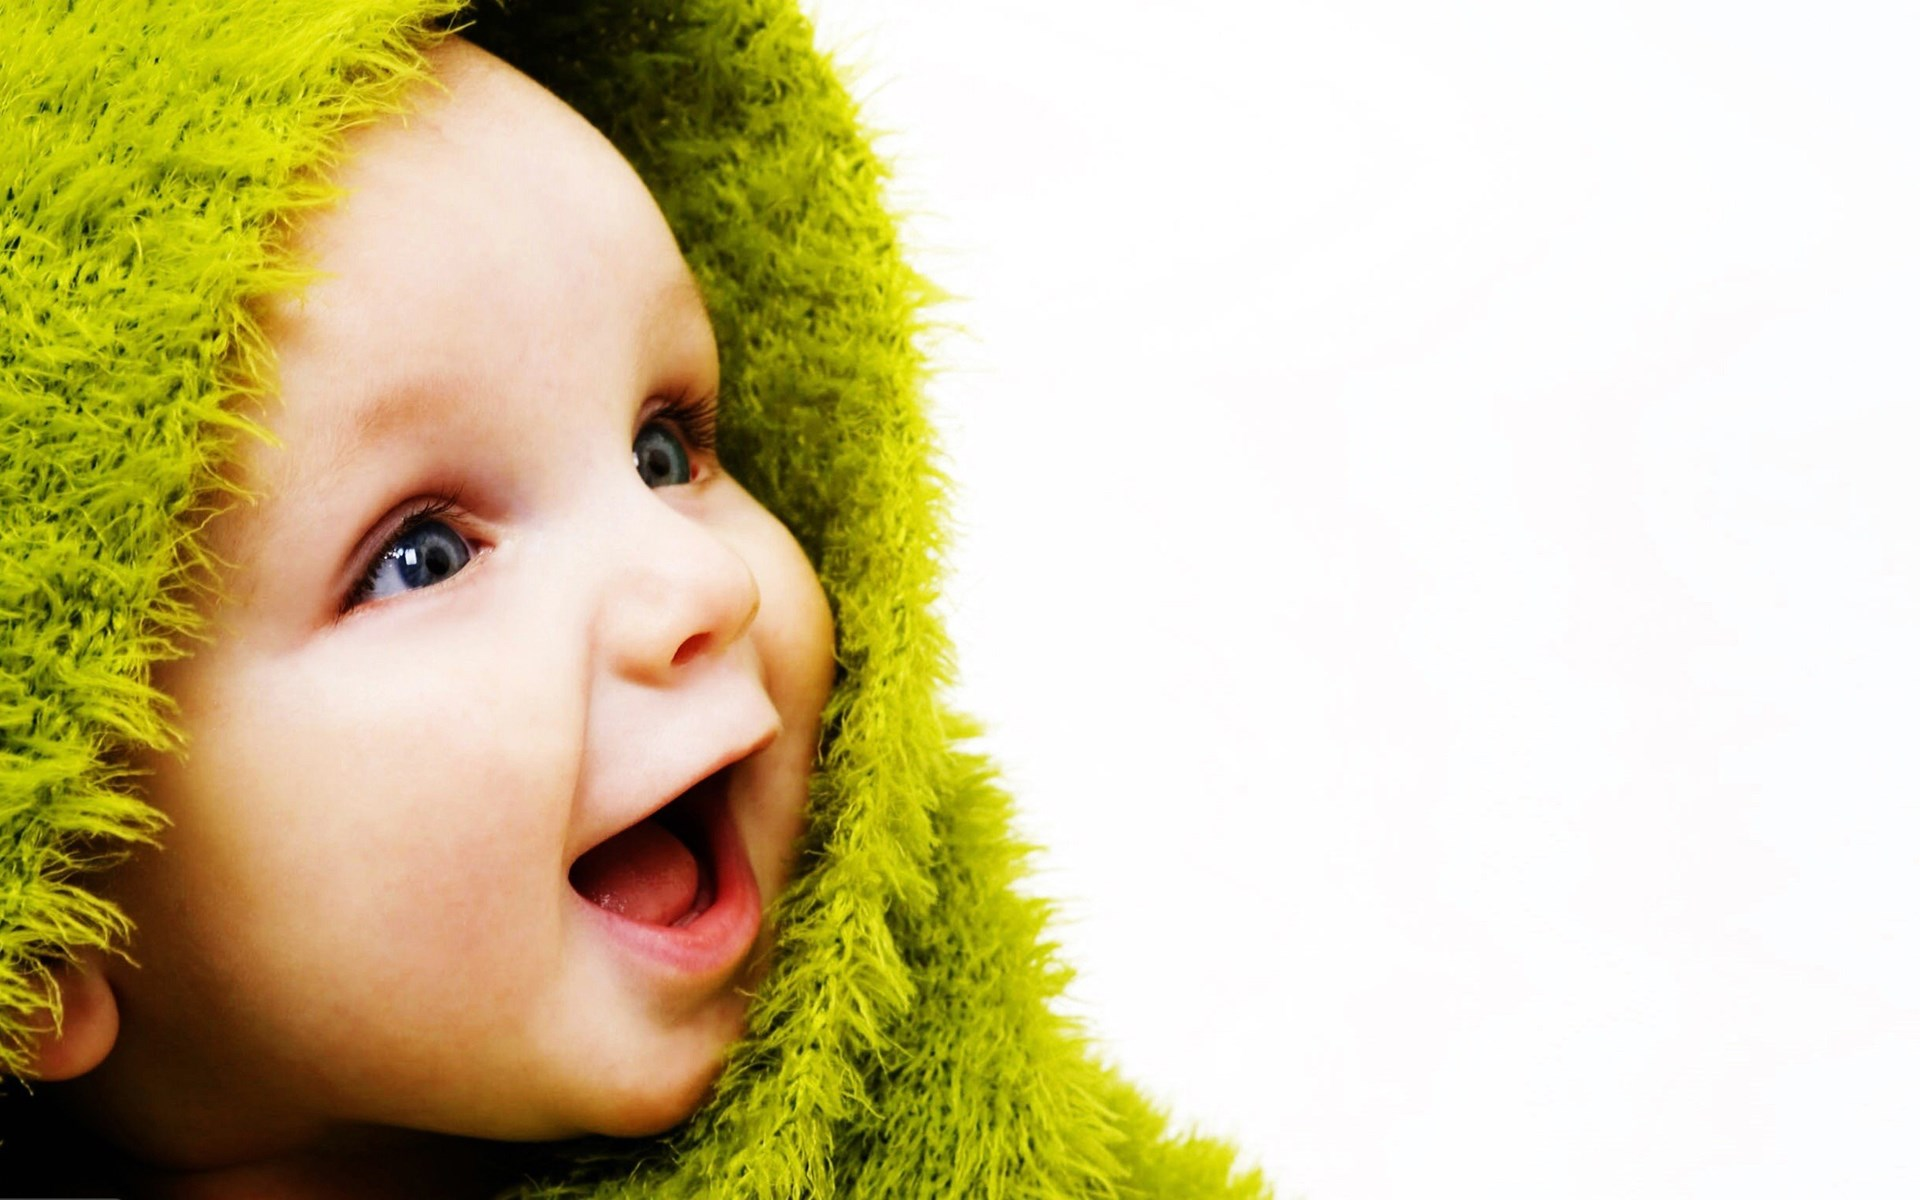 Cute Baby Images Wallpapers Hd Desktop Background